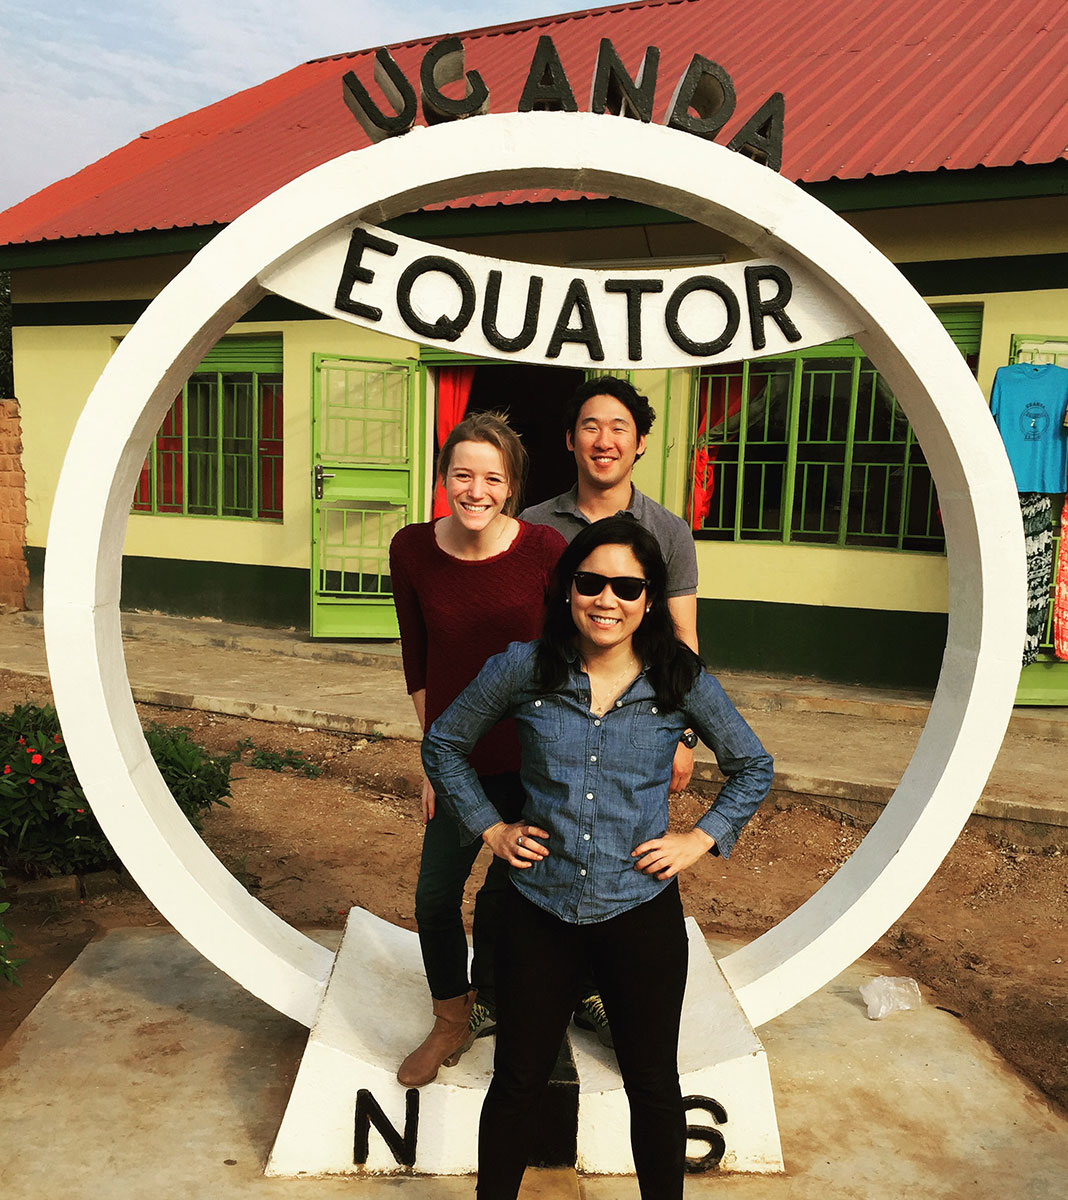 Darden students Christine Thach, Aldea Meary-Miller and Bryan Yoon at the equator. (Photo courtesy of Christine Thach).